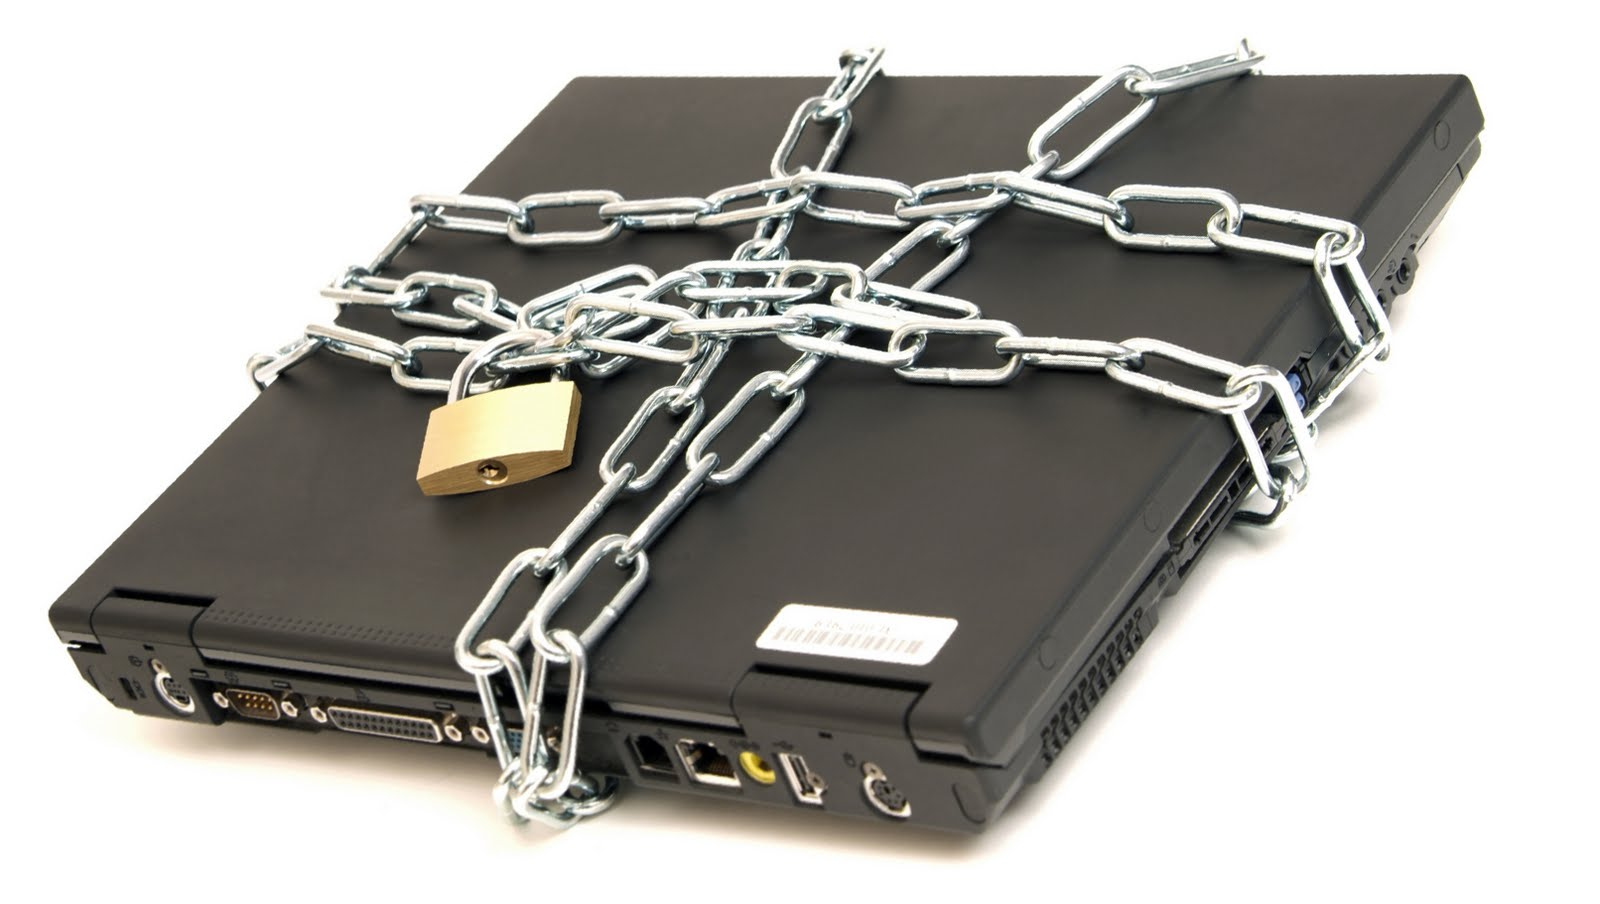 Pop Quiz: Your Laptop Is Stolen… Do You Have A Backup?